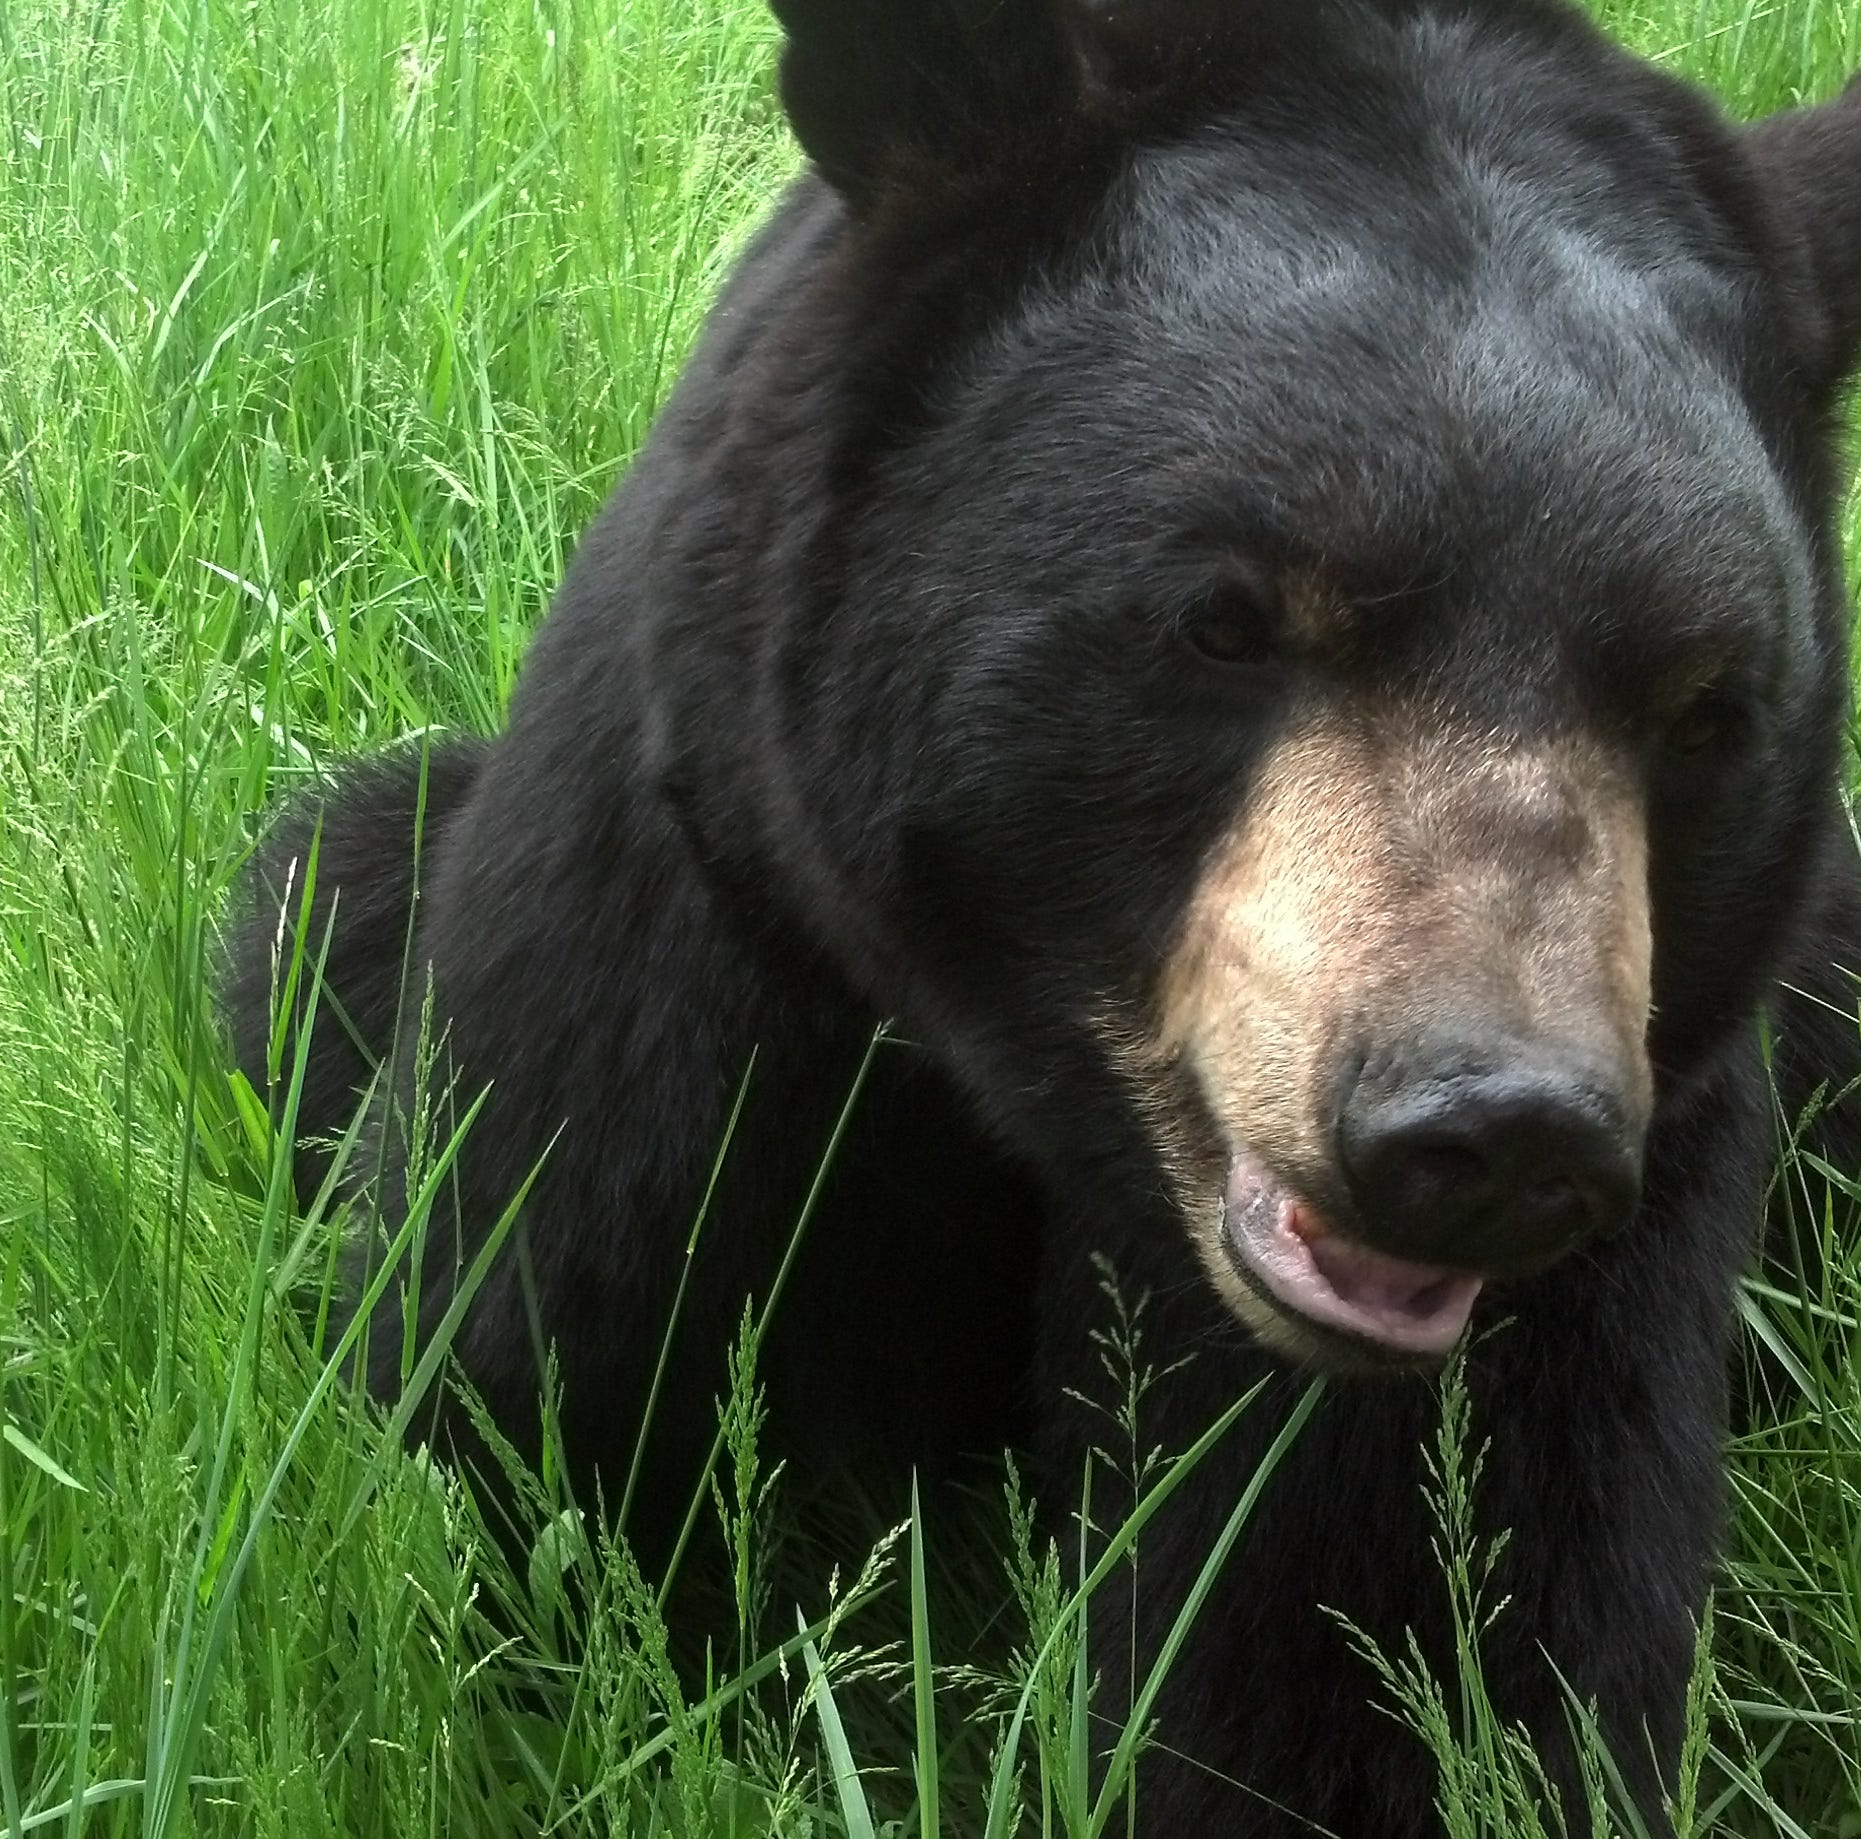 Nature Center Notes: WNC's favorite furry neighbor, the black bear